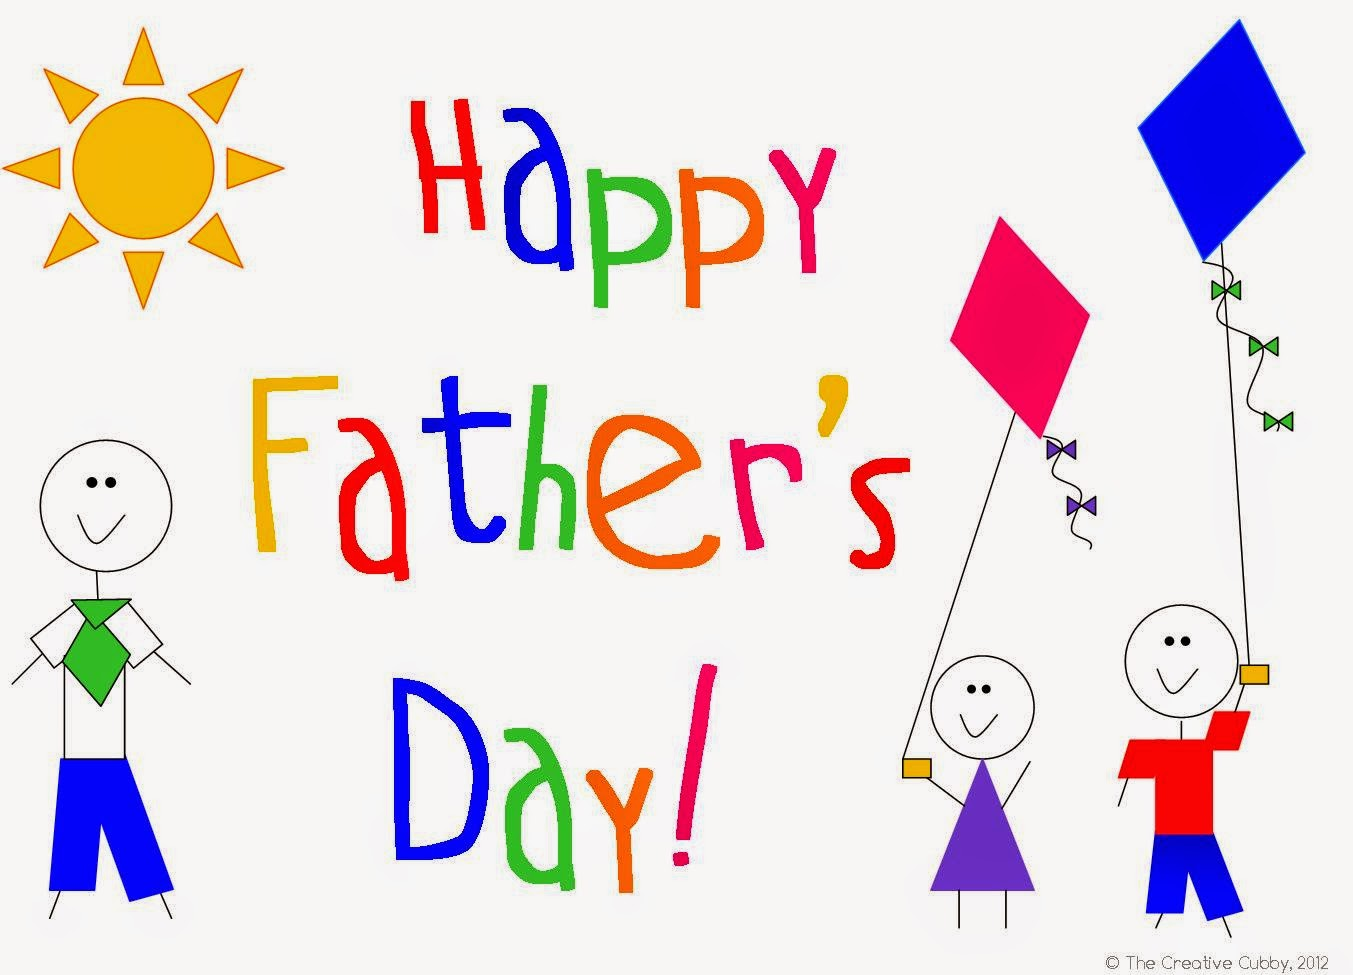 happy fathersday 2016 HD wallpapers images pictures cover photos (1)